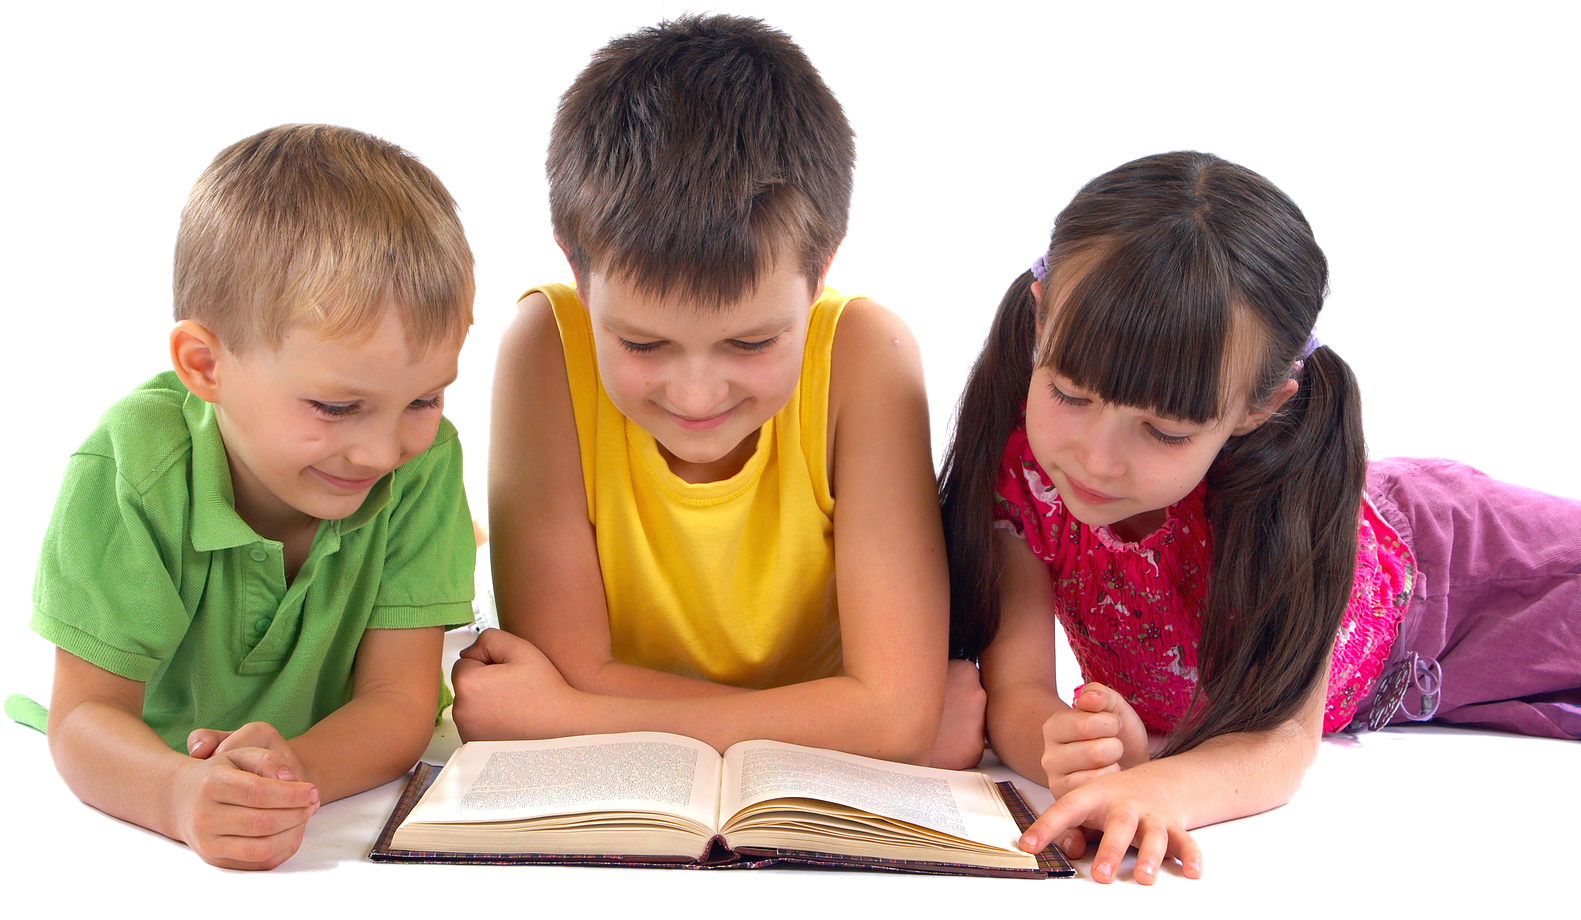 HD Png Hd Of Kids Reading Transparent PNG Image Download.